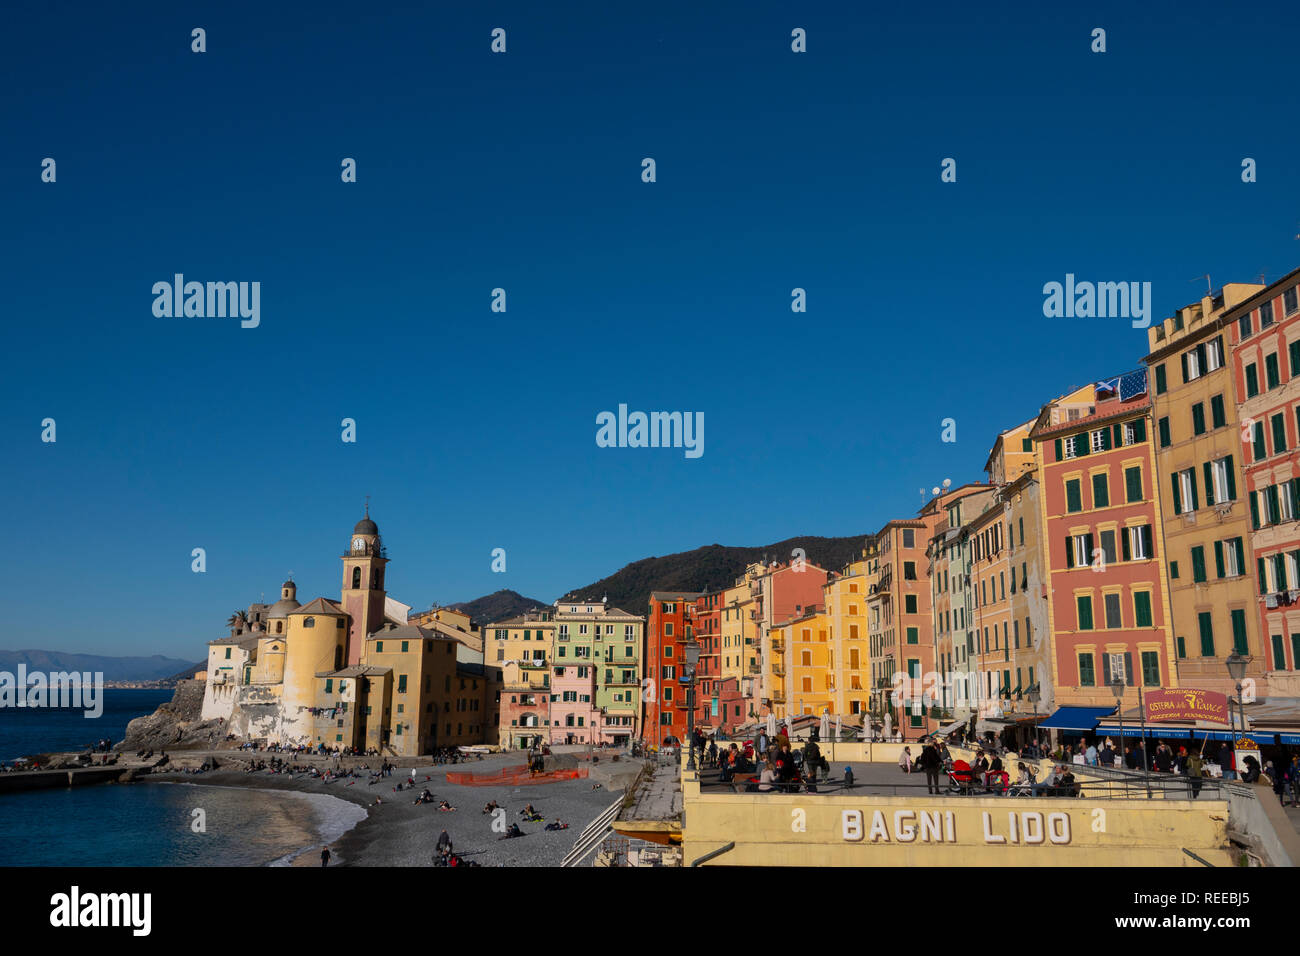 europe-italy-italia-camogli-mediterranean-coast-on-the-ligurian-sea-liguria-home-of-the-focaccia-bread-REEBJ5.jpg